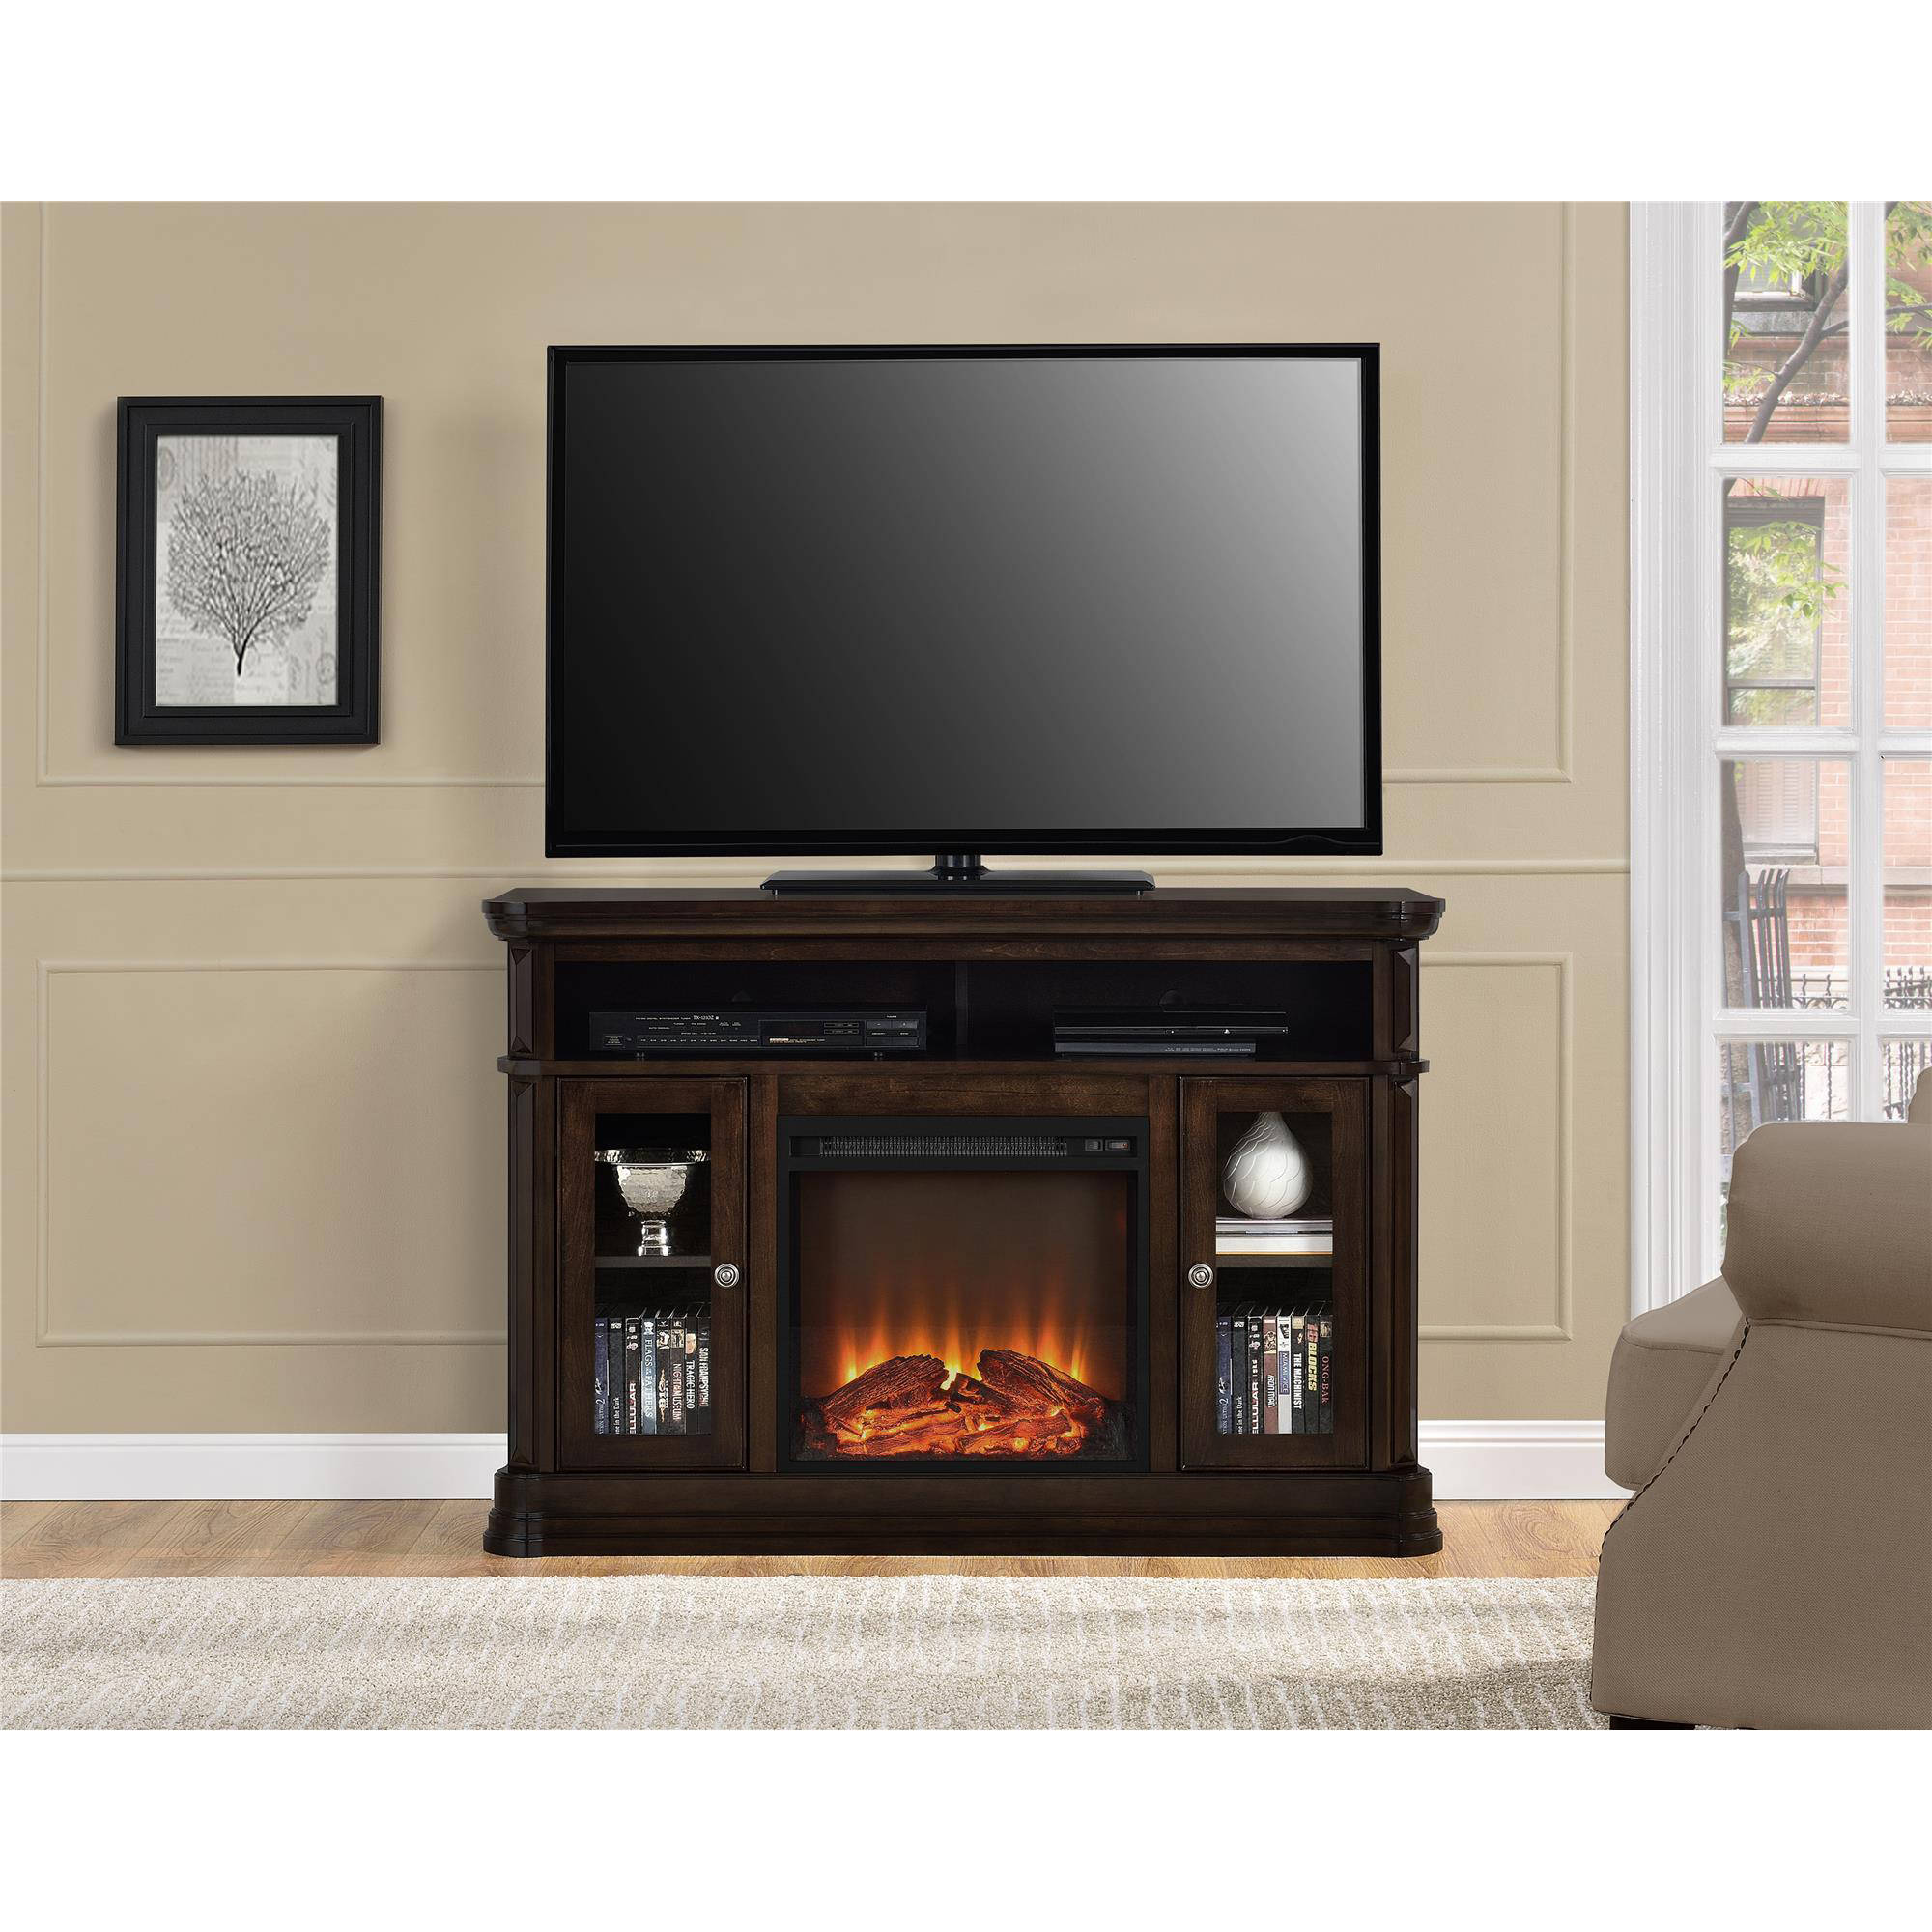 New southern enterprises griffin electric fireplace with bookcases espresso walmart com